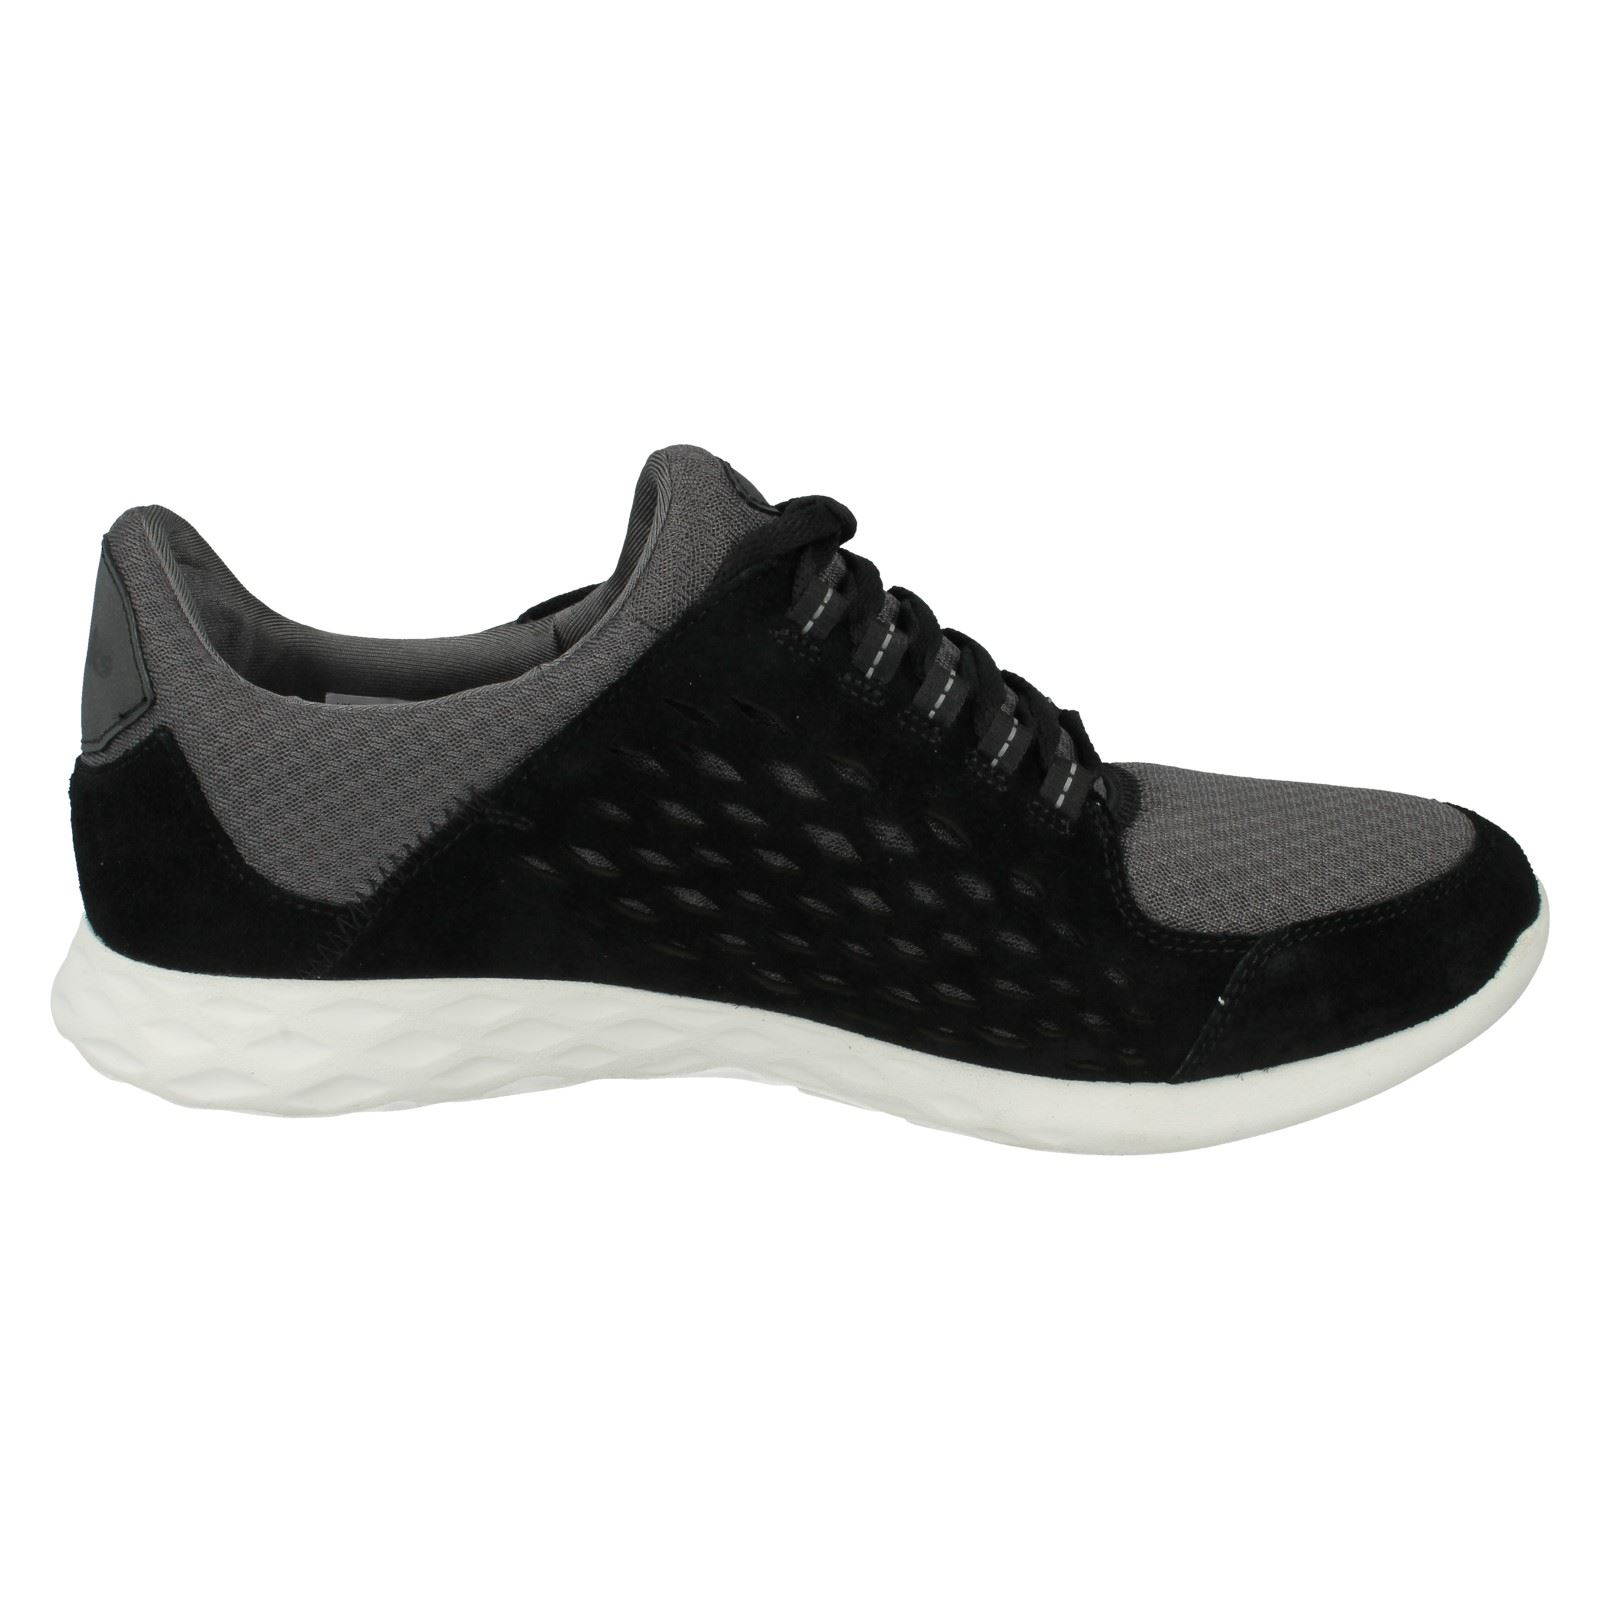 Men's Clarks Trainer Casual Sheos The Style - Seremax Lace